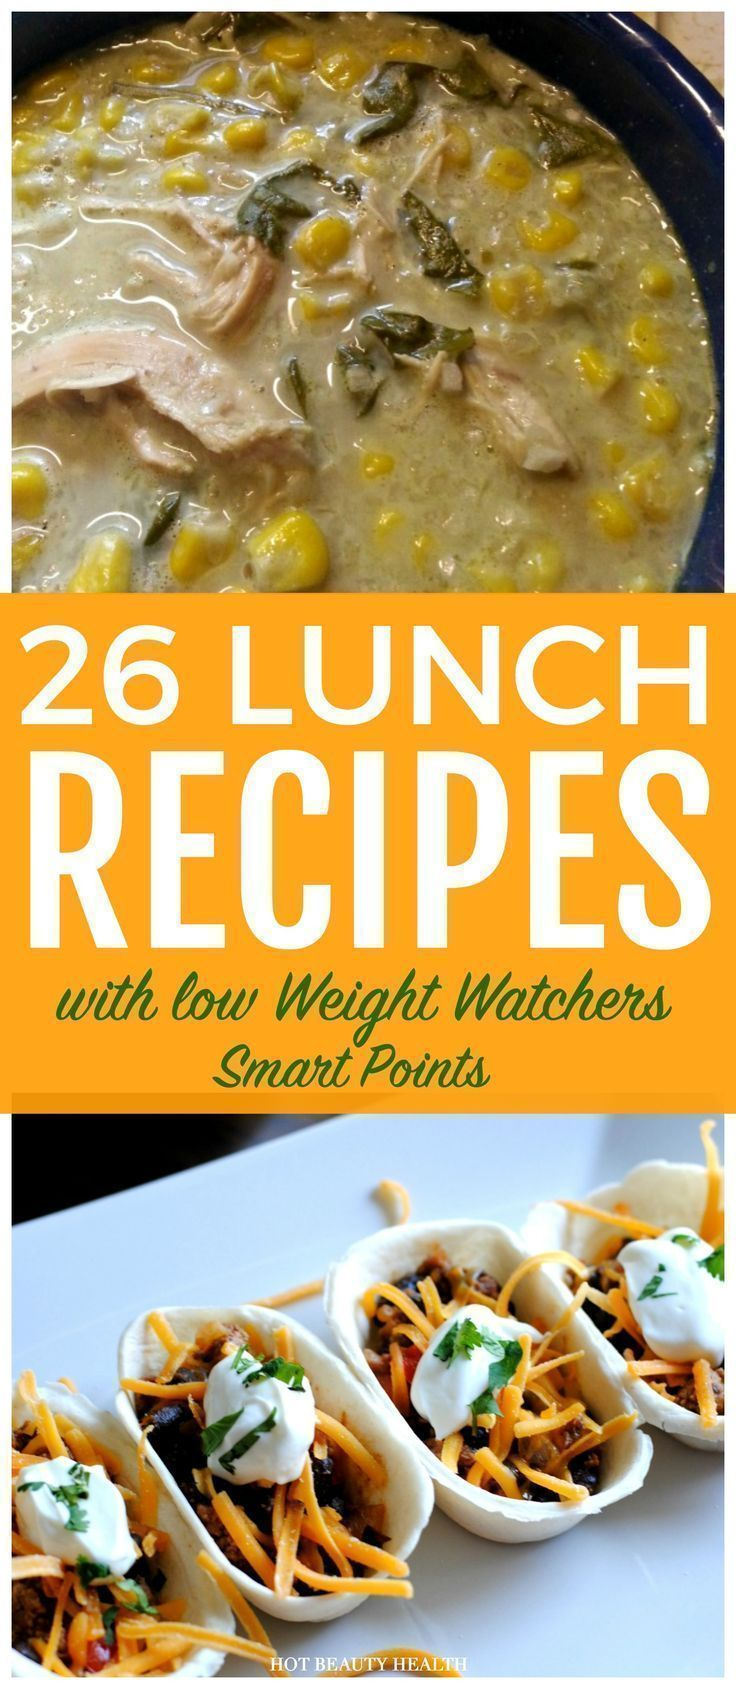 The Best Weight Watchers Lunches With Smart Points – Healthy Recipes